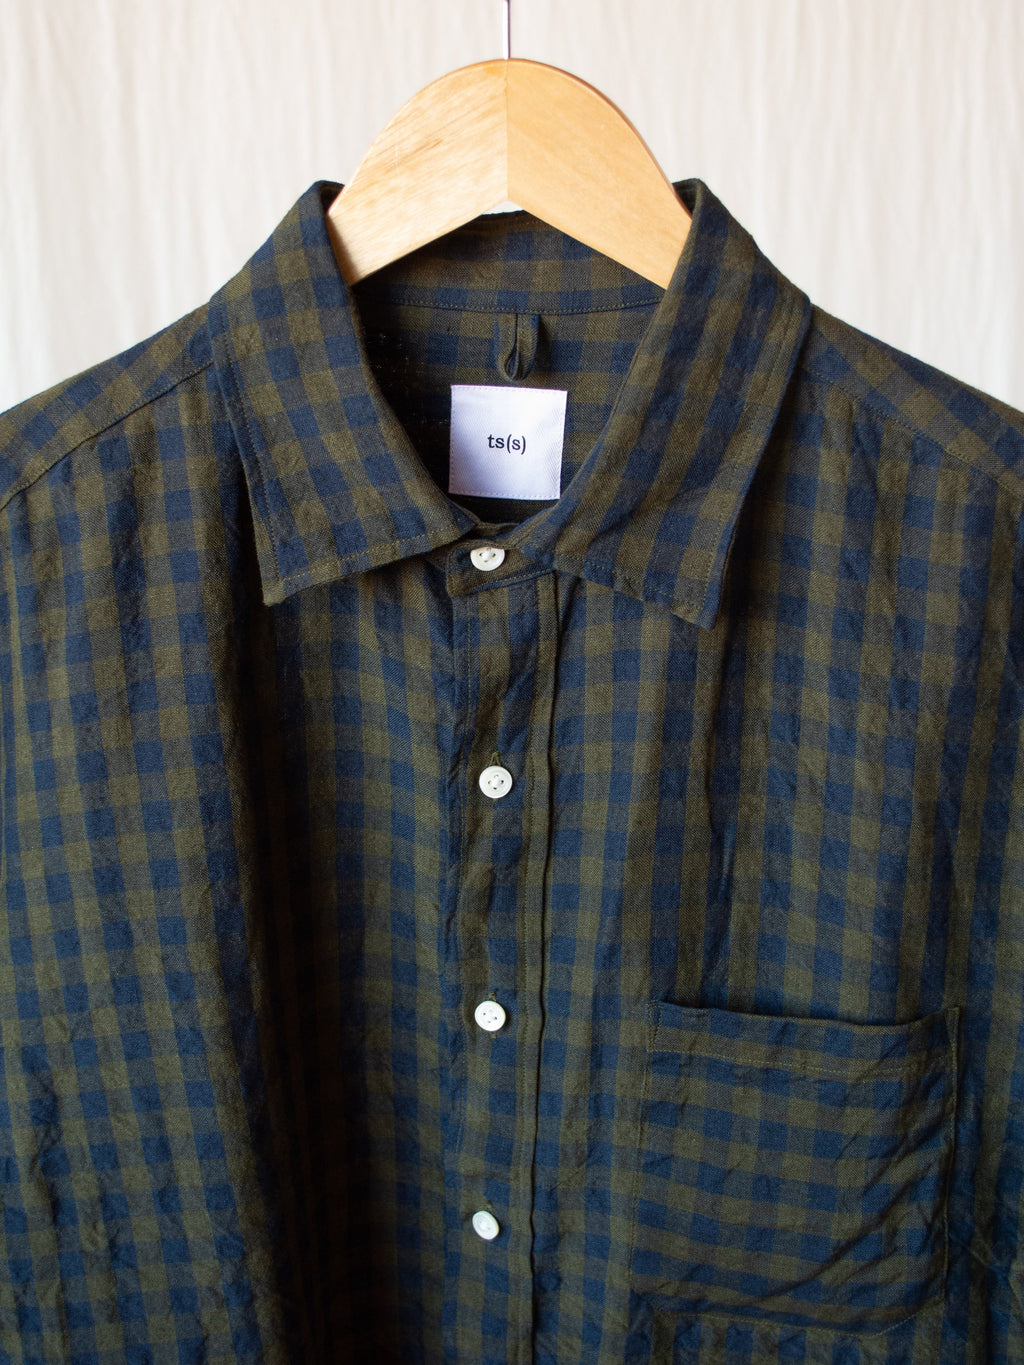 Namu Shop - ts(s) Irish Linen Baggy Shirt - Navy Gingham